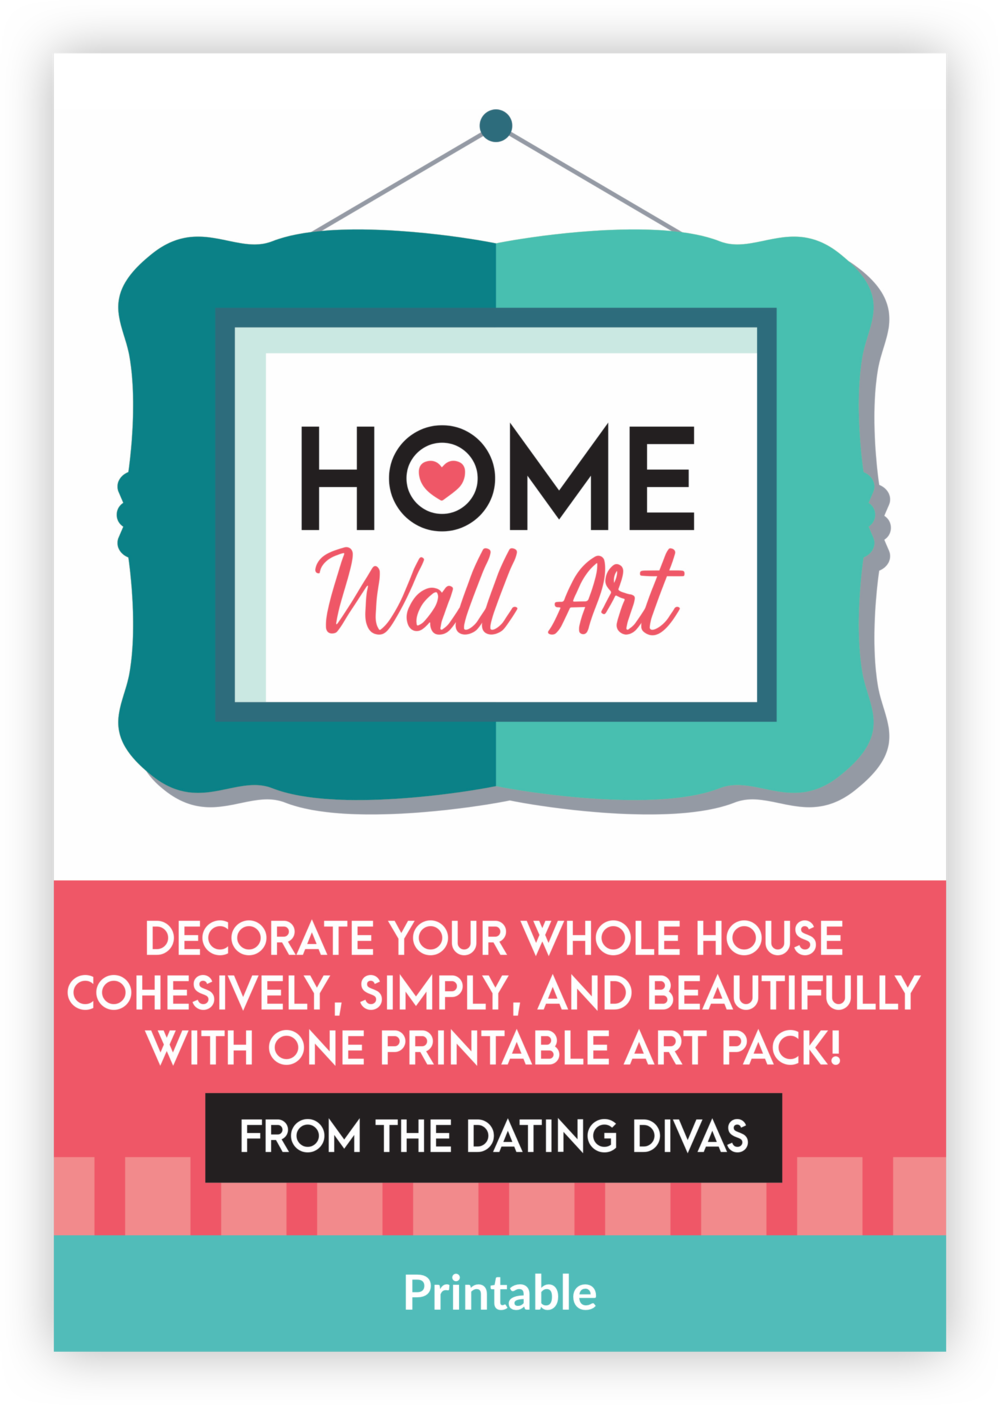 HomeWallArt Mockup - Copy.png